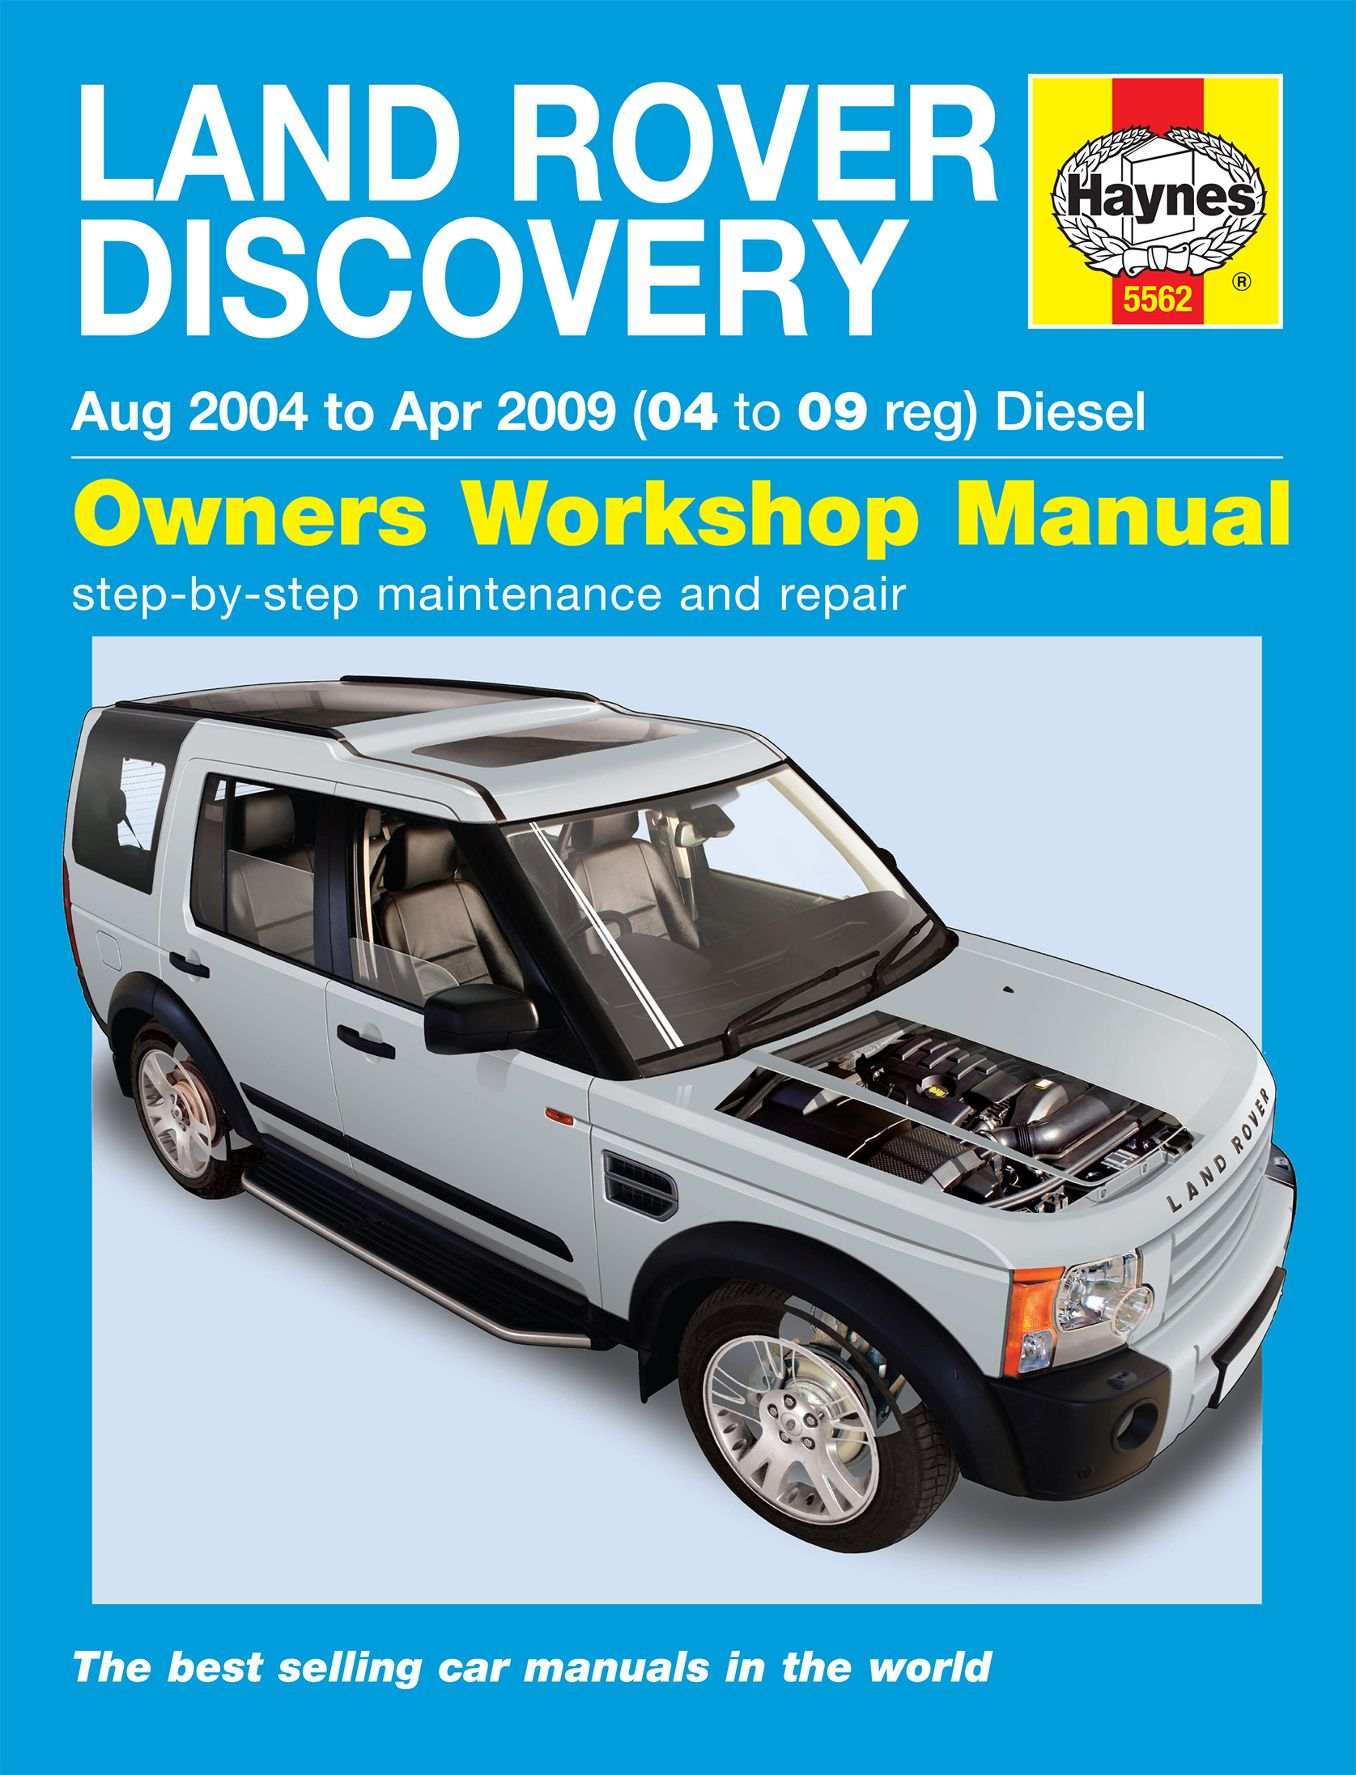 2004 2009 land rover discovery diesel repair manual 5562. Black Bedroom Furniture Sets. Home Design Ideas